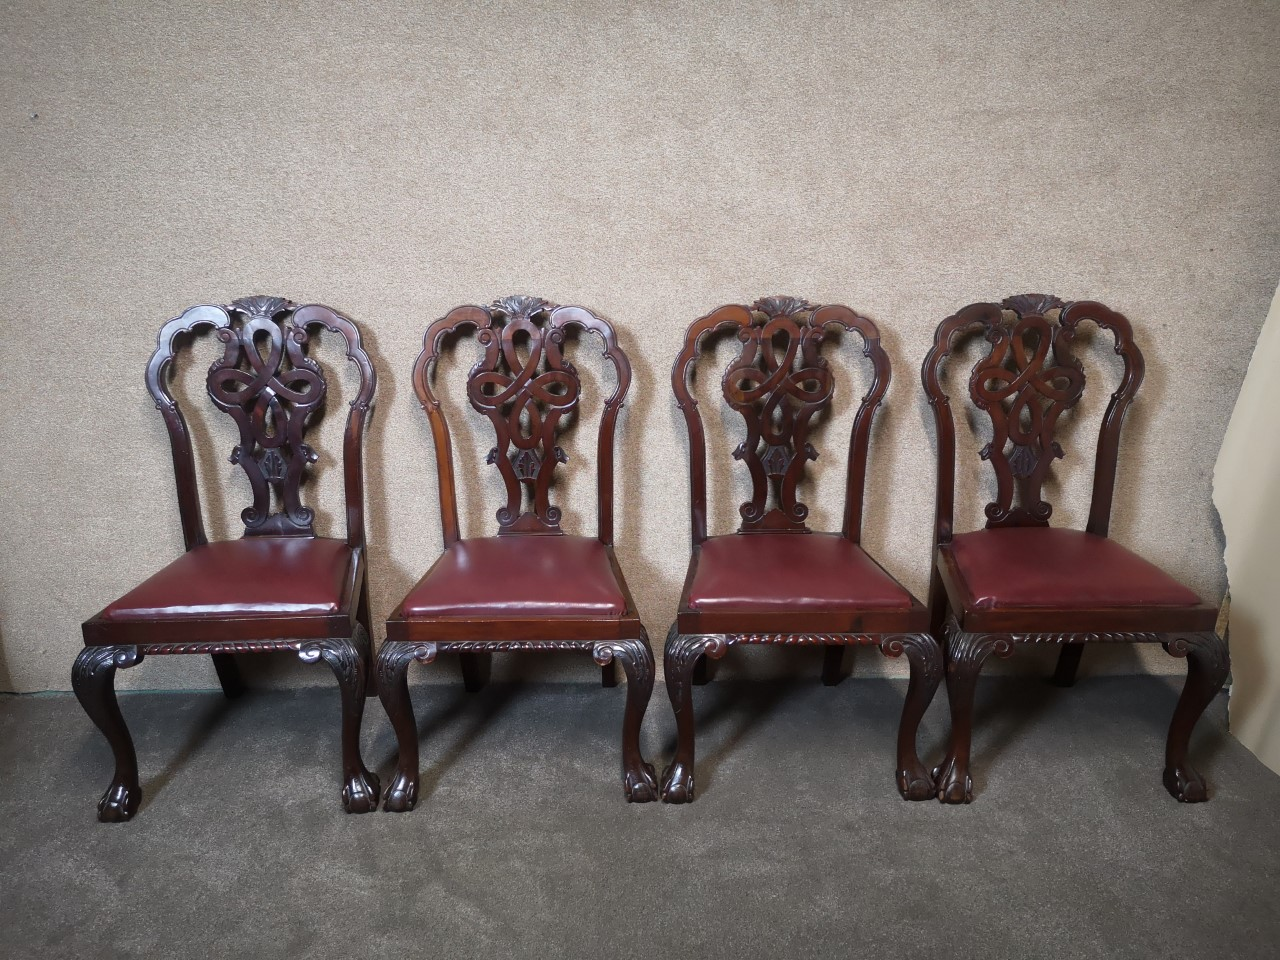 Set of 4 mahogany Chippendale chairs画像